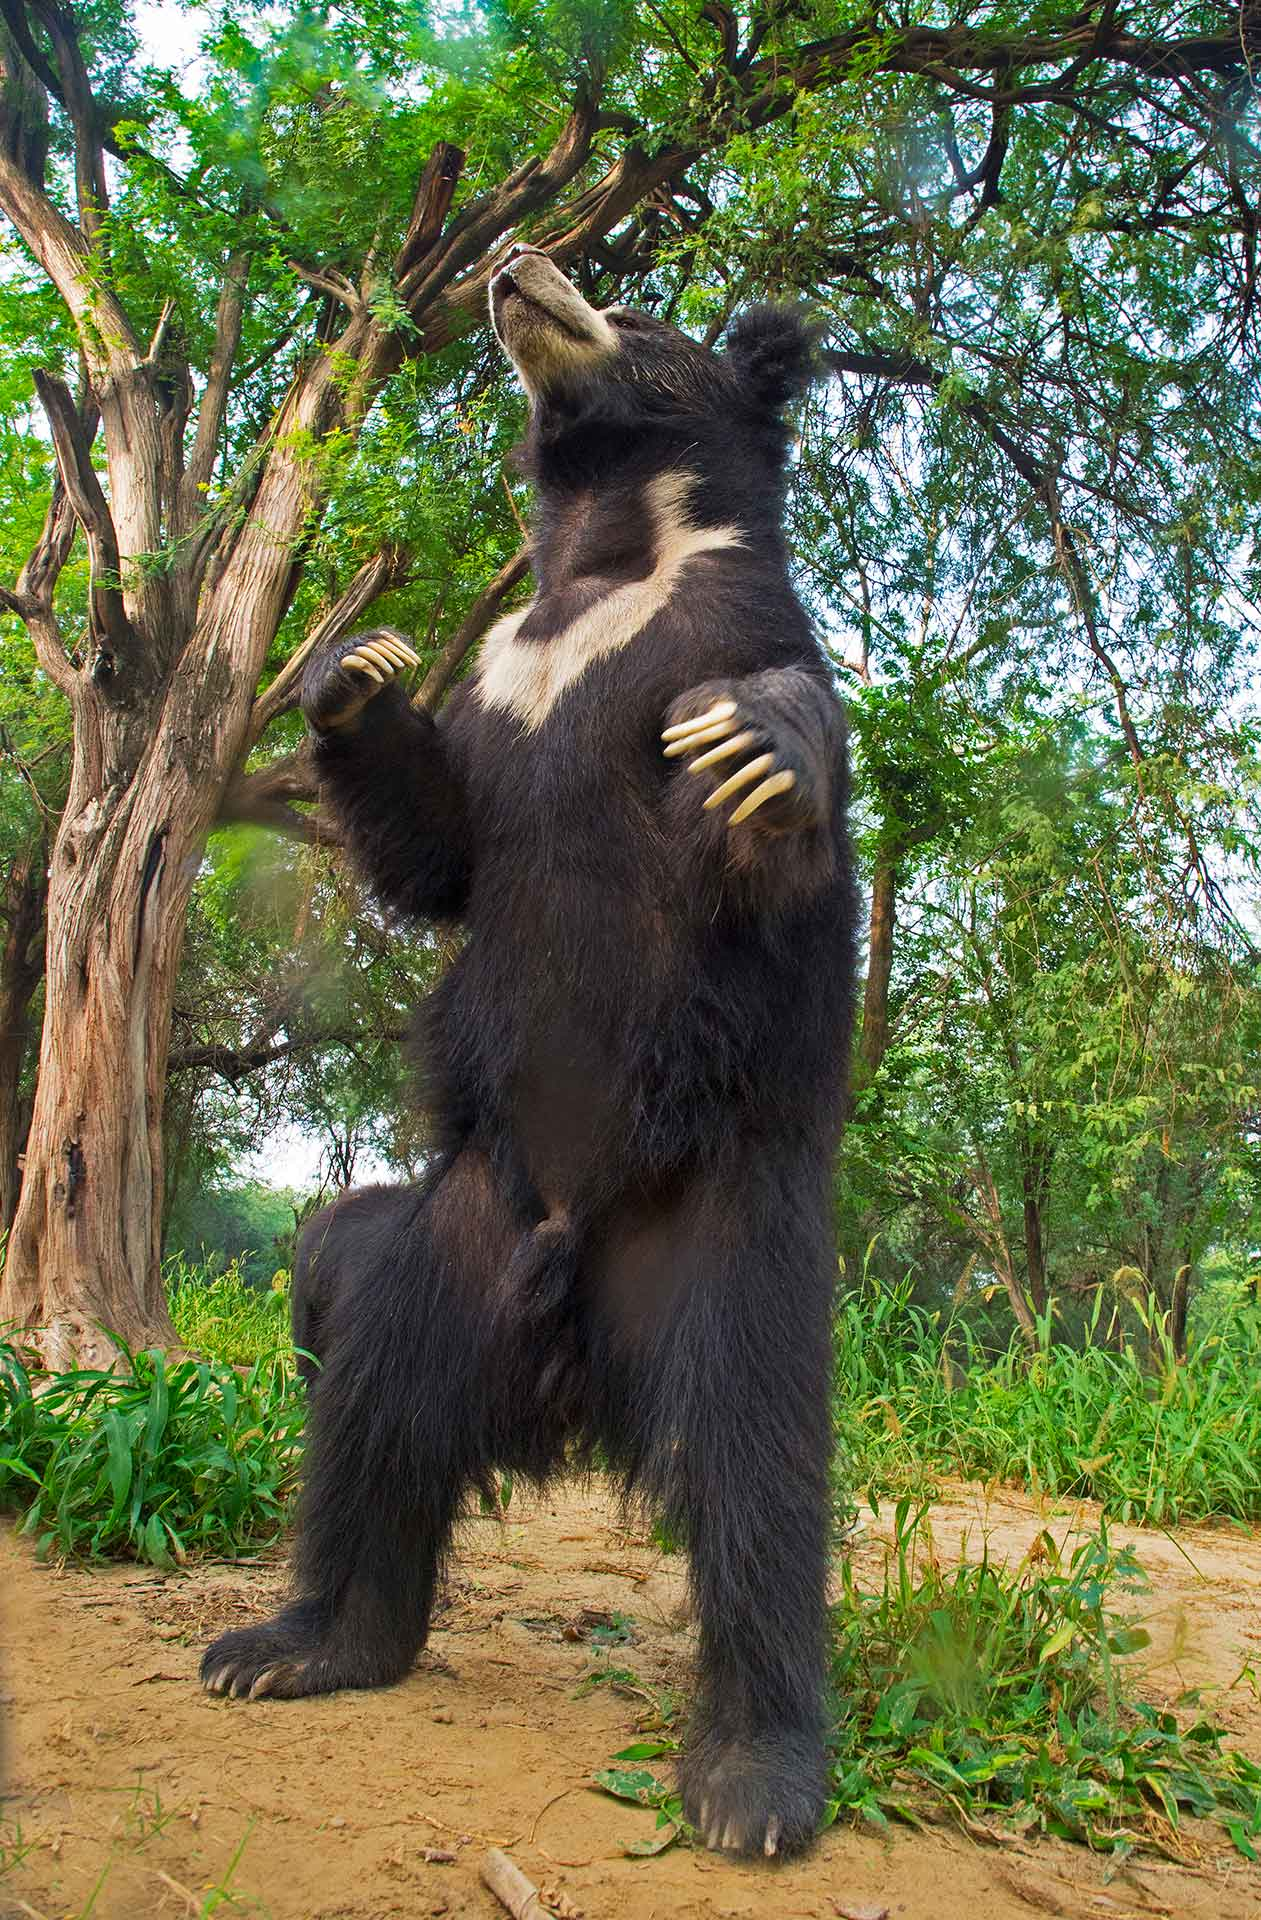 """For decades, sloth bears across India were illegally captured and turned into """"dancing bears"""". They were separated from their mothers at a young age, chained, and treated brutally in the name of training. They were forced to perform on street corners and earn a livelihood for communities that had been doing it for generations and saw no other way to earn money. Thanks to funding, community outreach programmes, and awareness drives by organisations such as Wildlife SOS, dancing bears are now largely considered a thing of the past."""